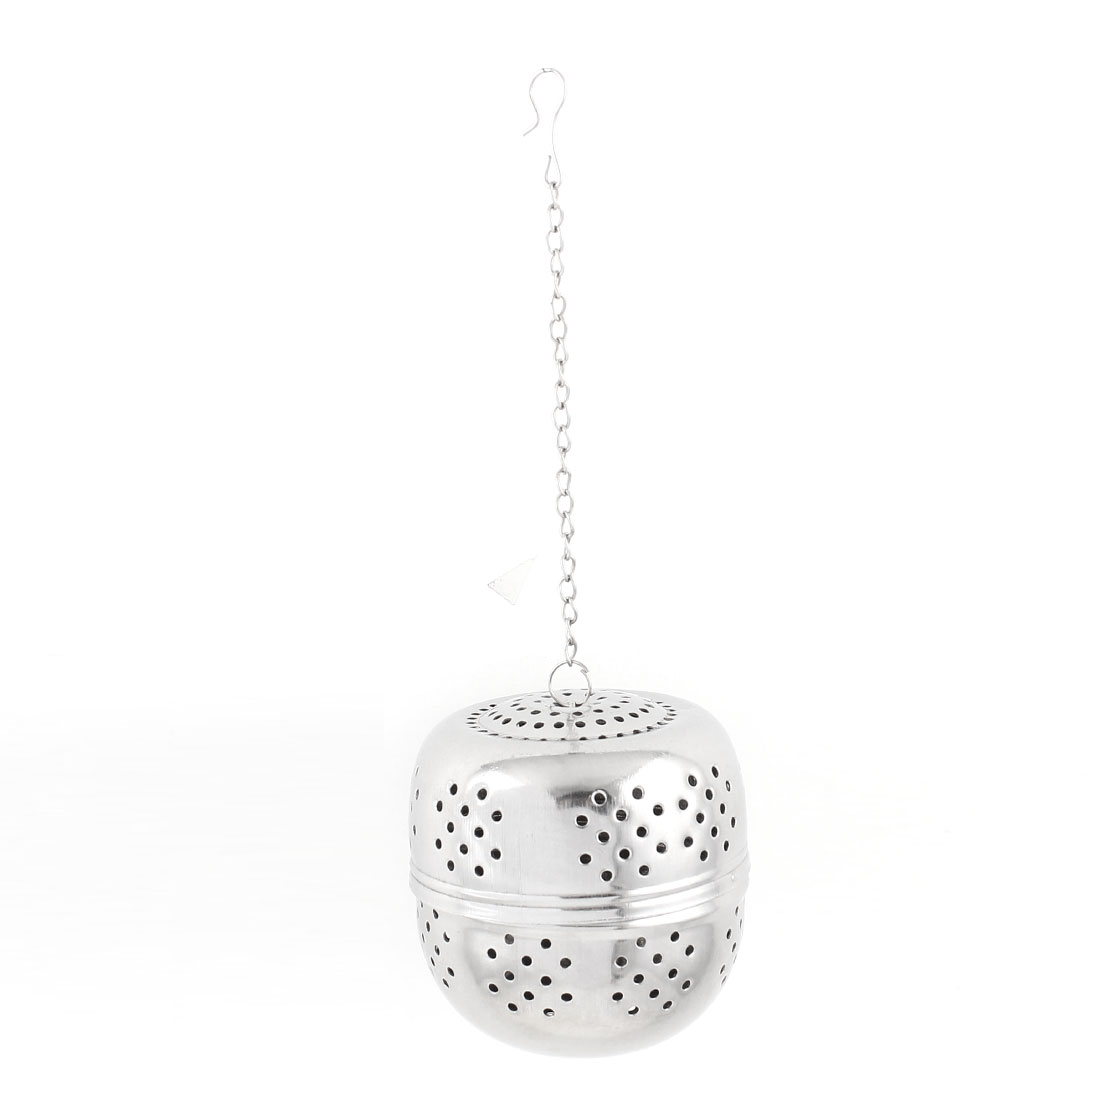 Kitchen 65mm Dia Stainless Steel Ball Strainer Tea Leaf Spice Perfume Infuser